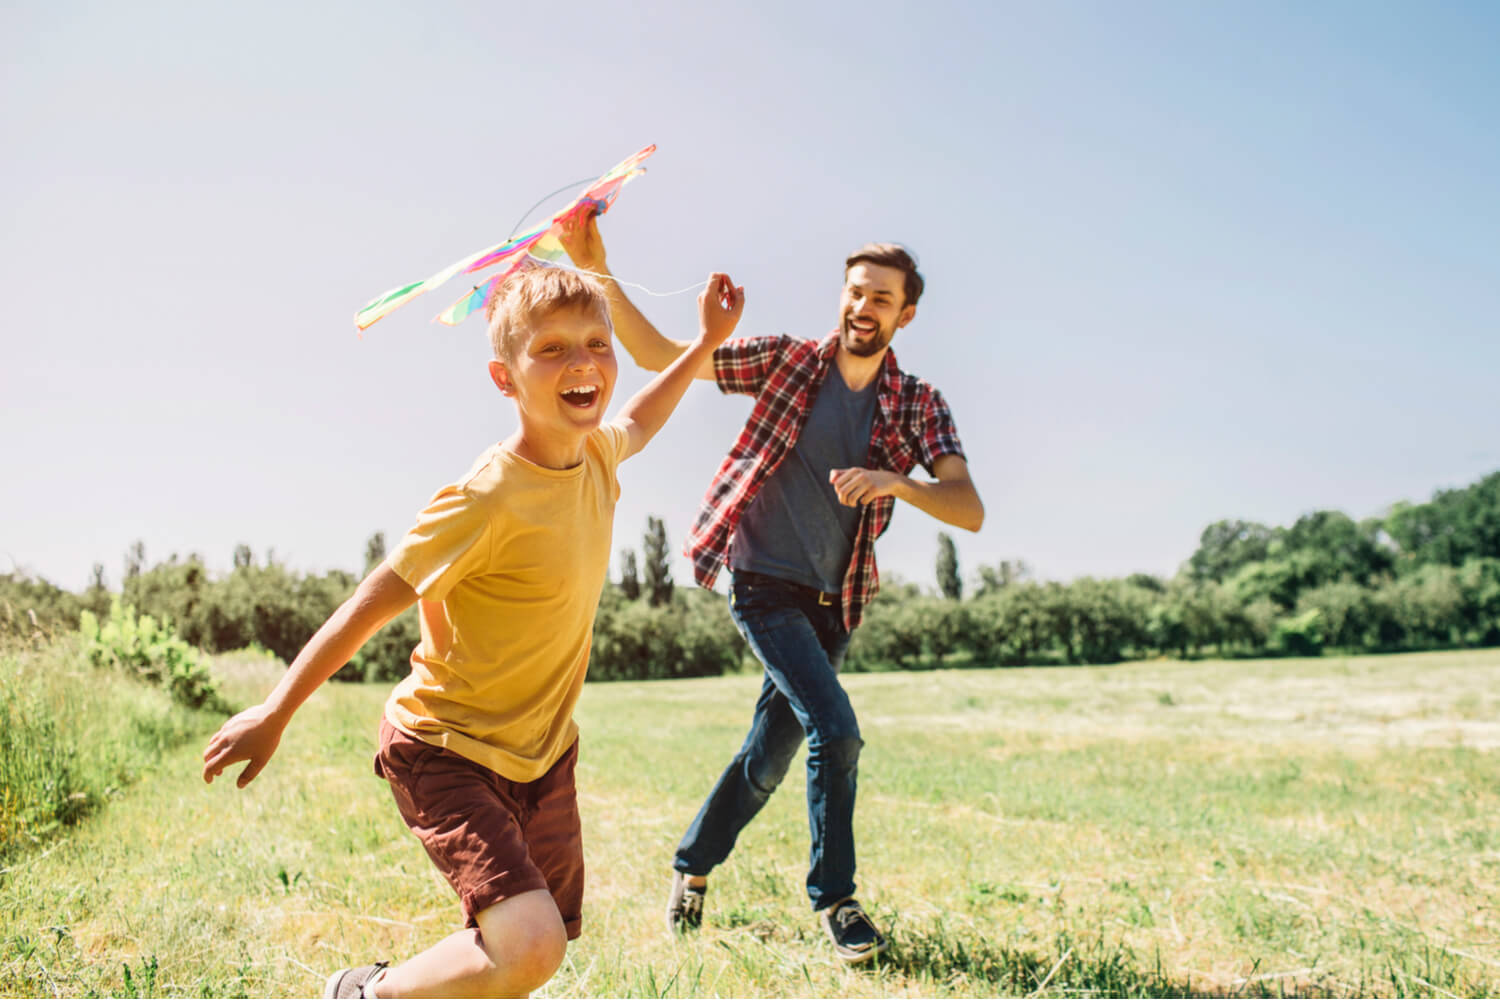 A father and son gleefully play with kites during their spring break in Wisconsin Dells.